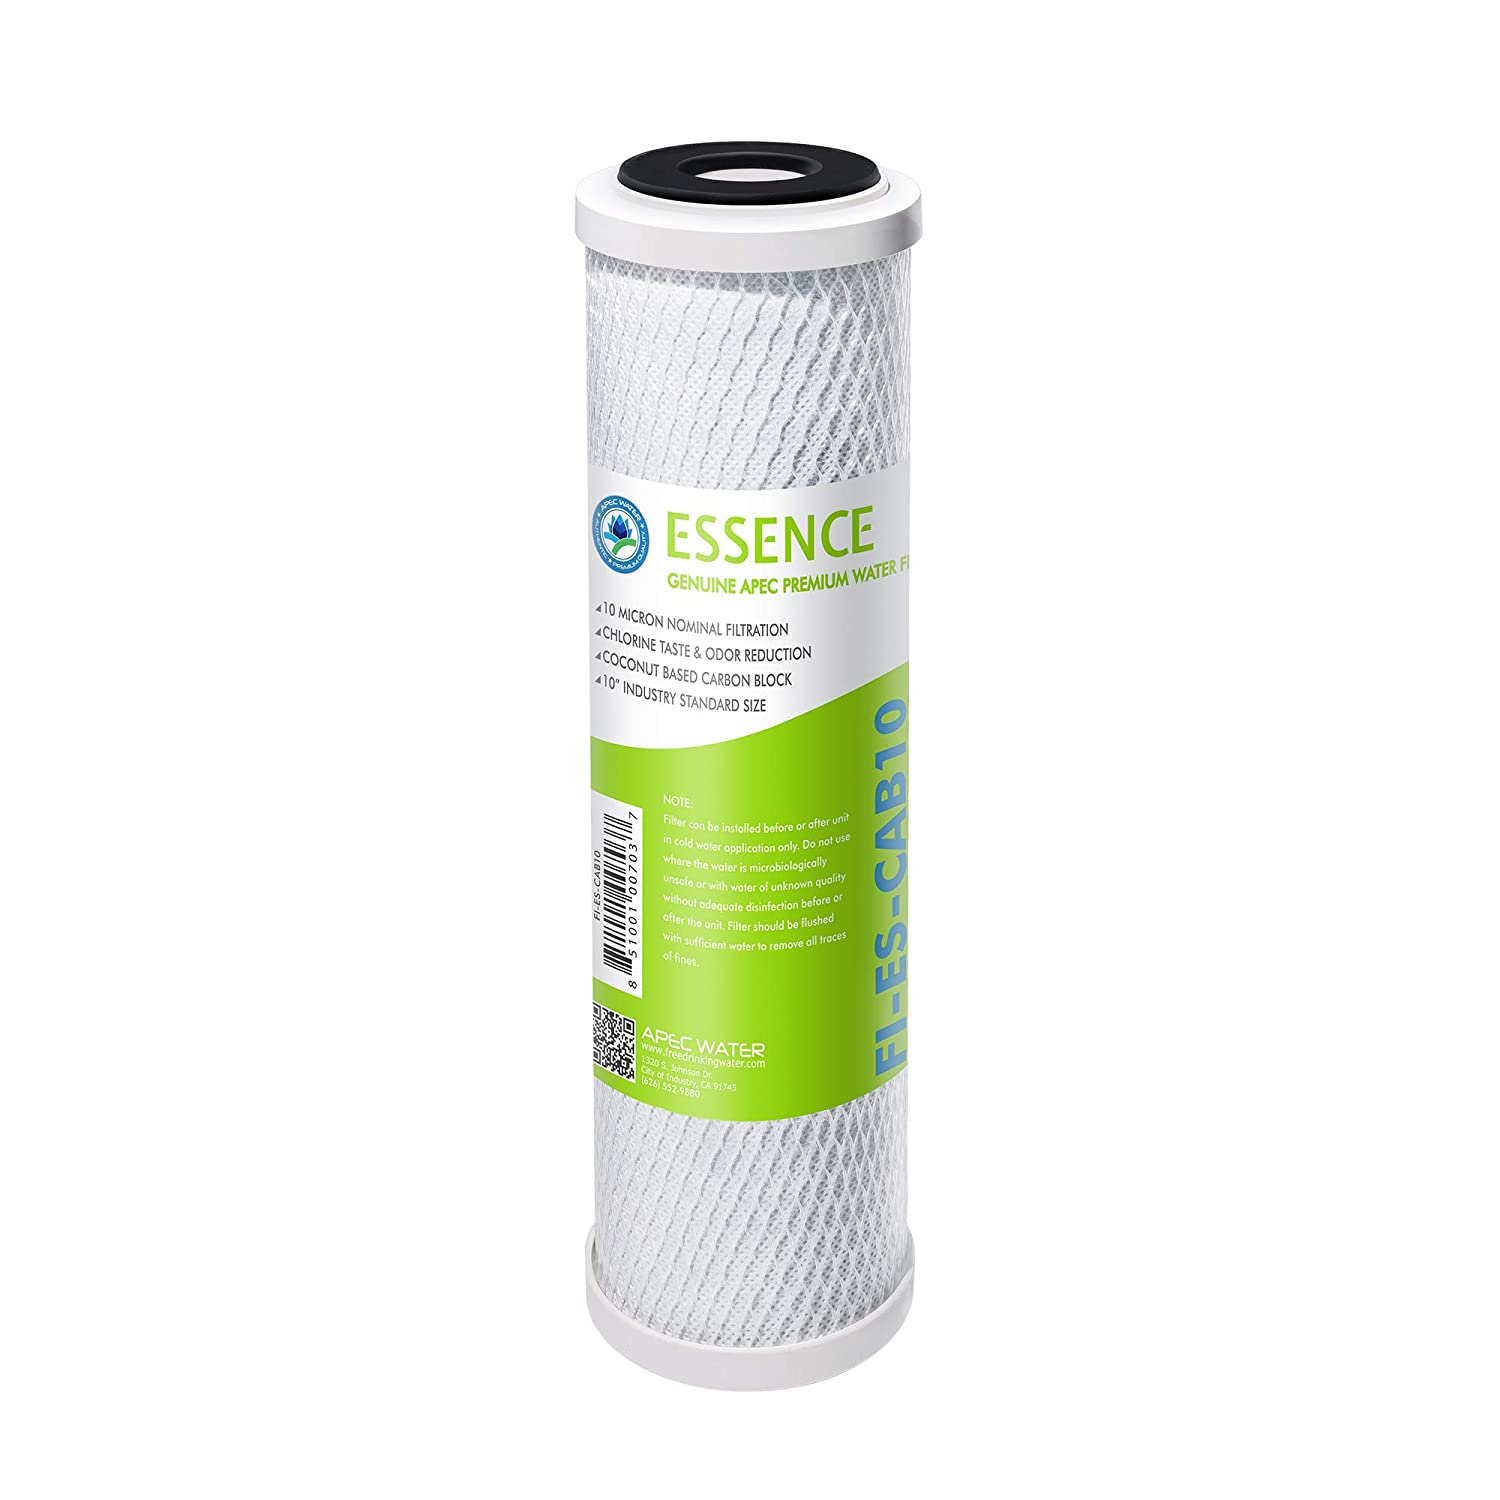 "APEC 10"" Carbon Block Water Filter For Reverse Osmosis System, 10"" x 2.5"", 10 Micron (FI-ES-CAB10)"